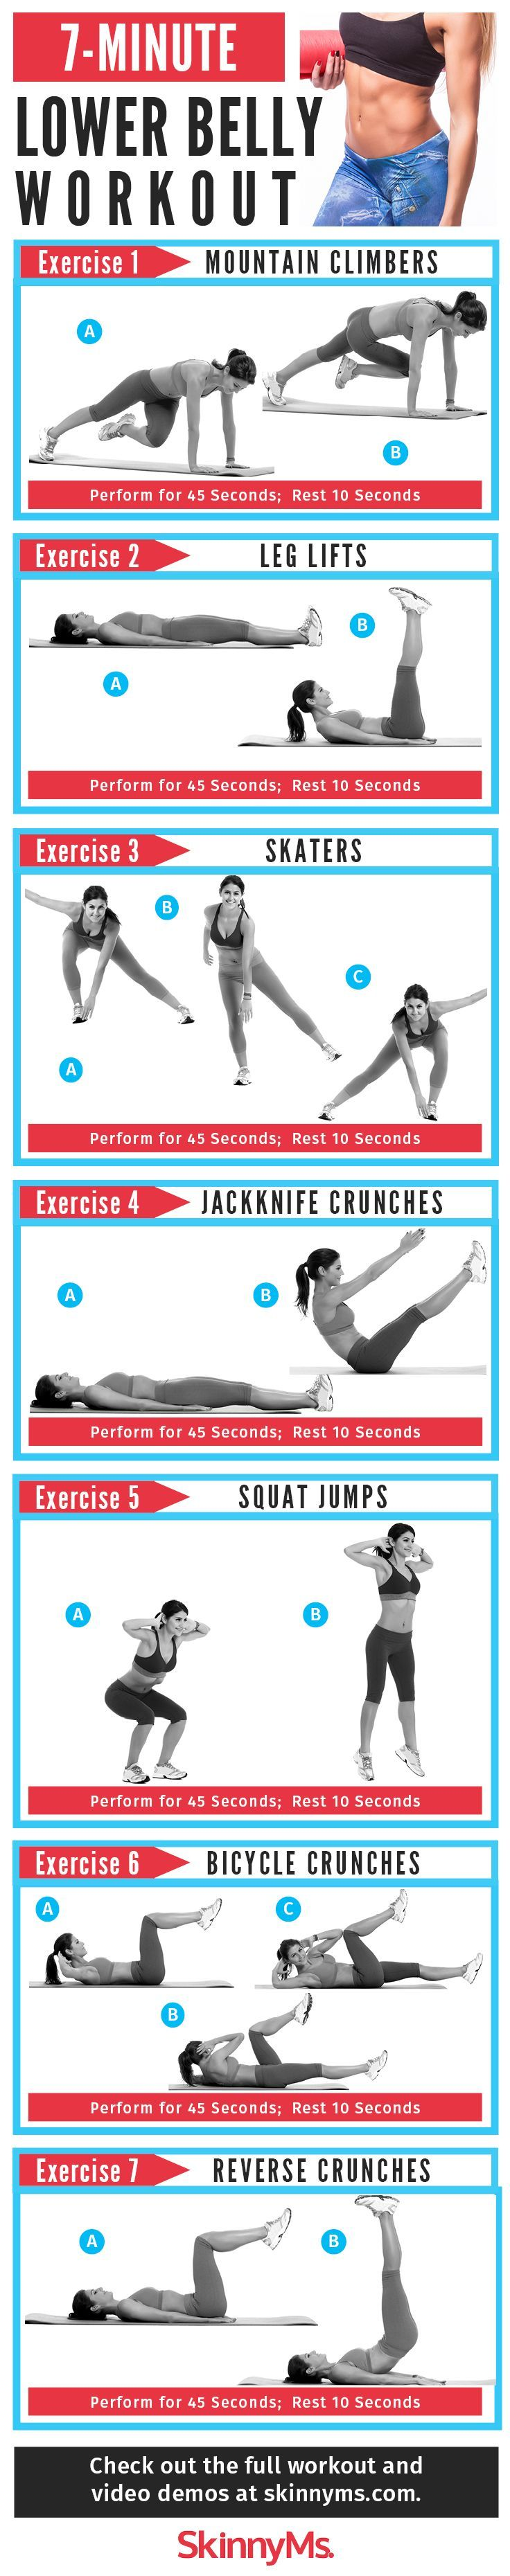 Sculpt your core with this Flat Belly Workout in time for swimsuit season! #Summer #abworkout #workout